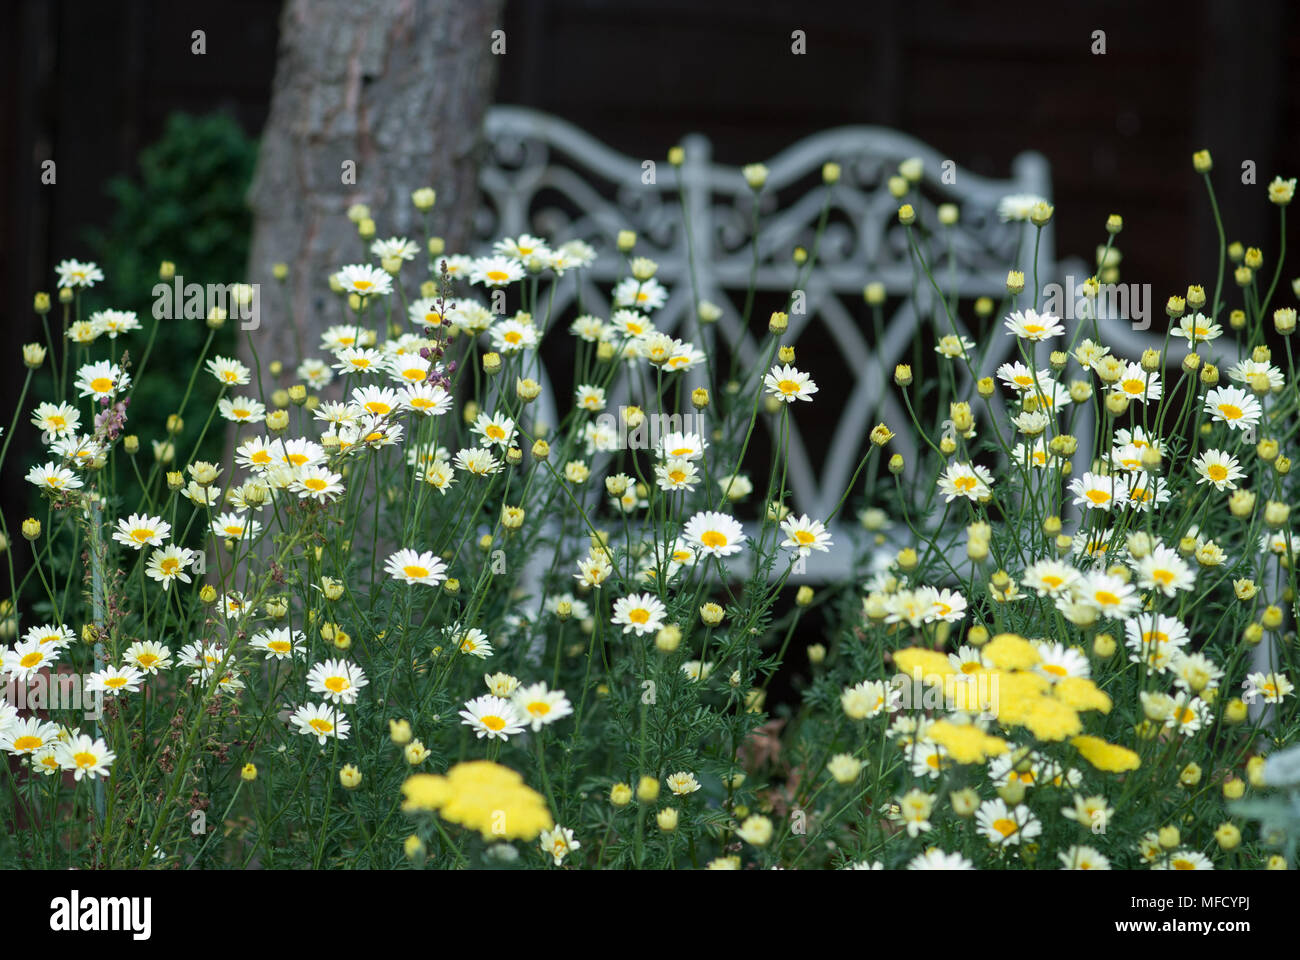 Herbaceous Border containing daisies and sedum - Stock Image